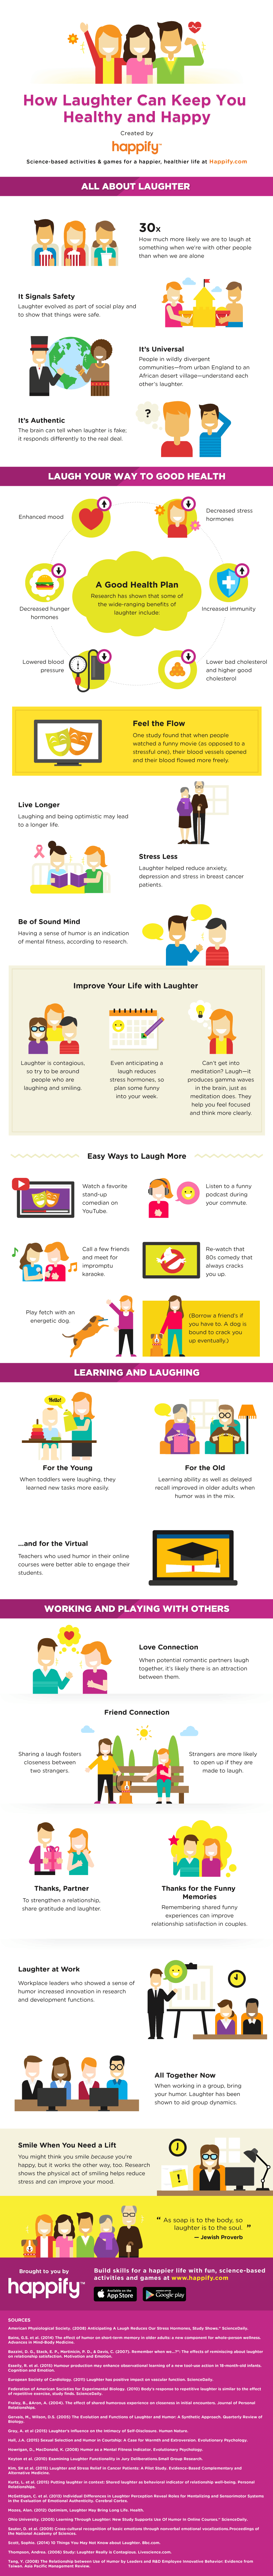 How Laughter Can Keep You Healthy and Happy